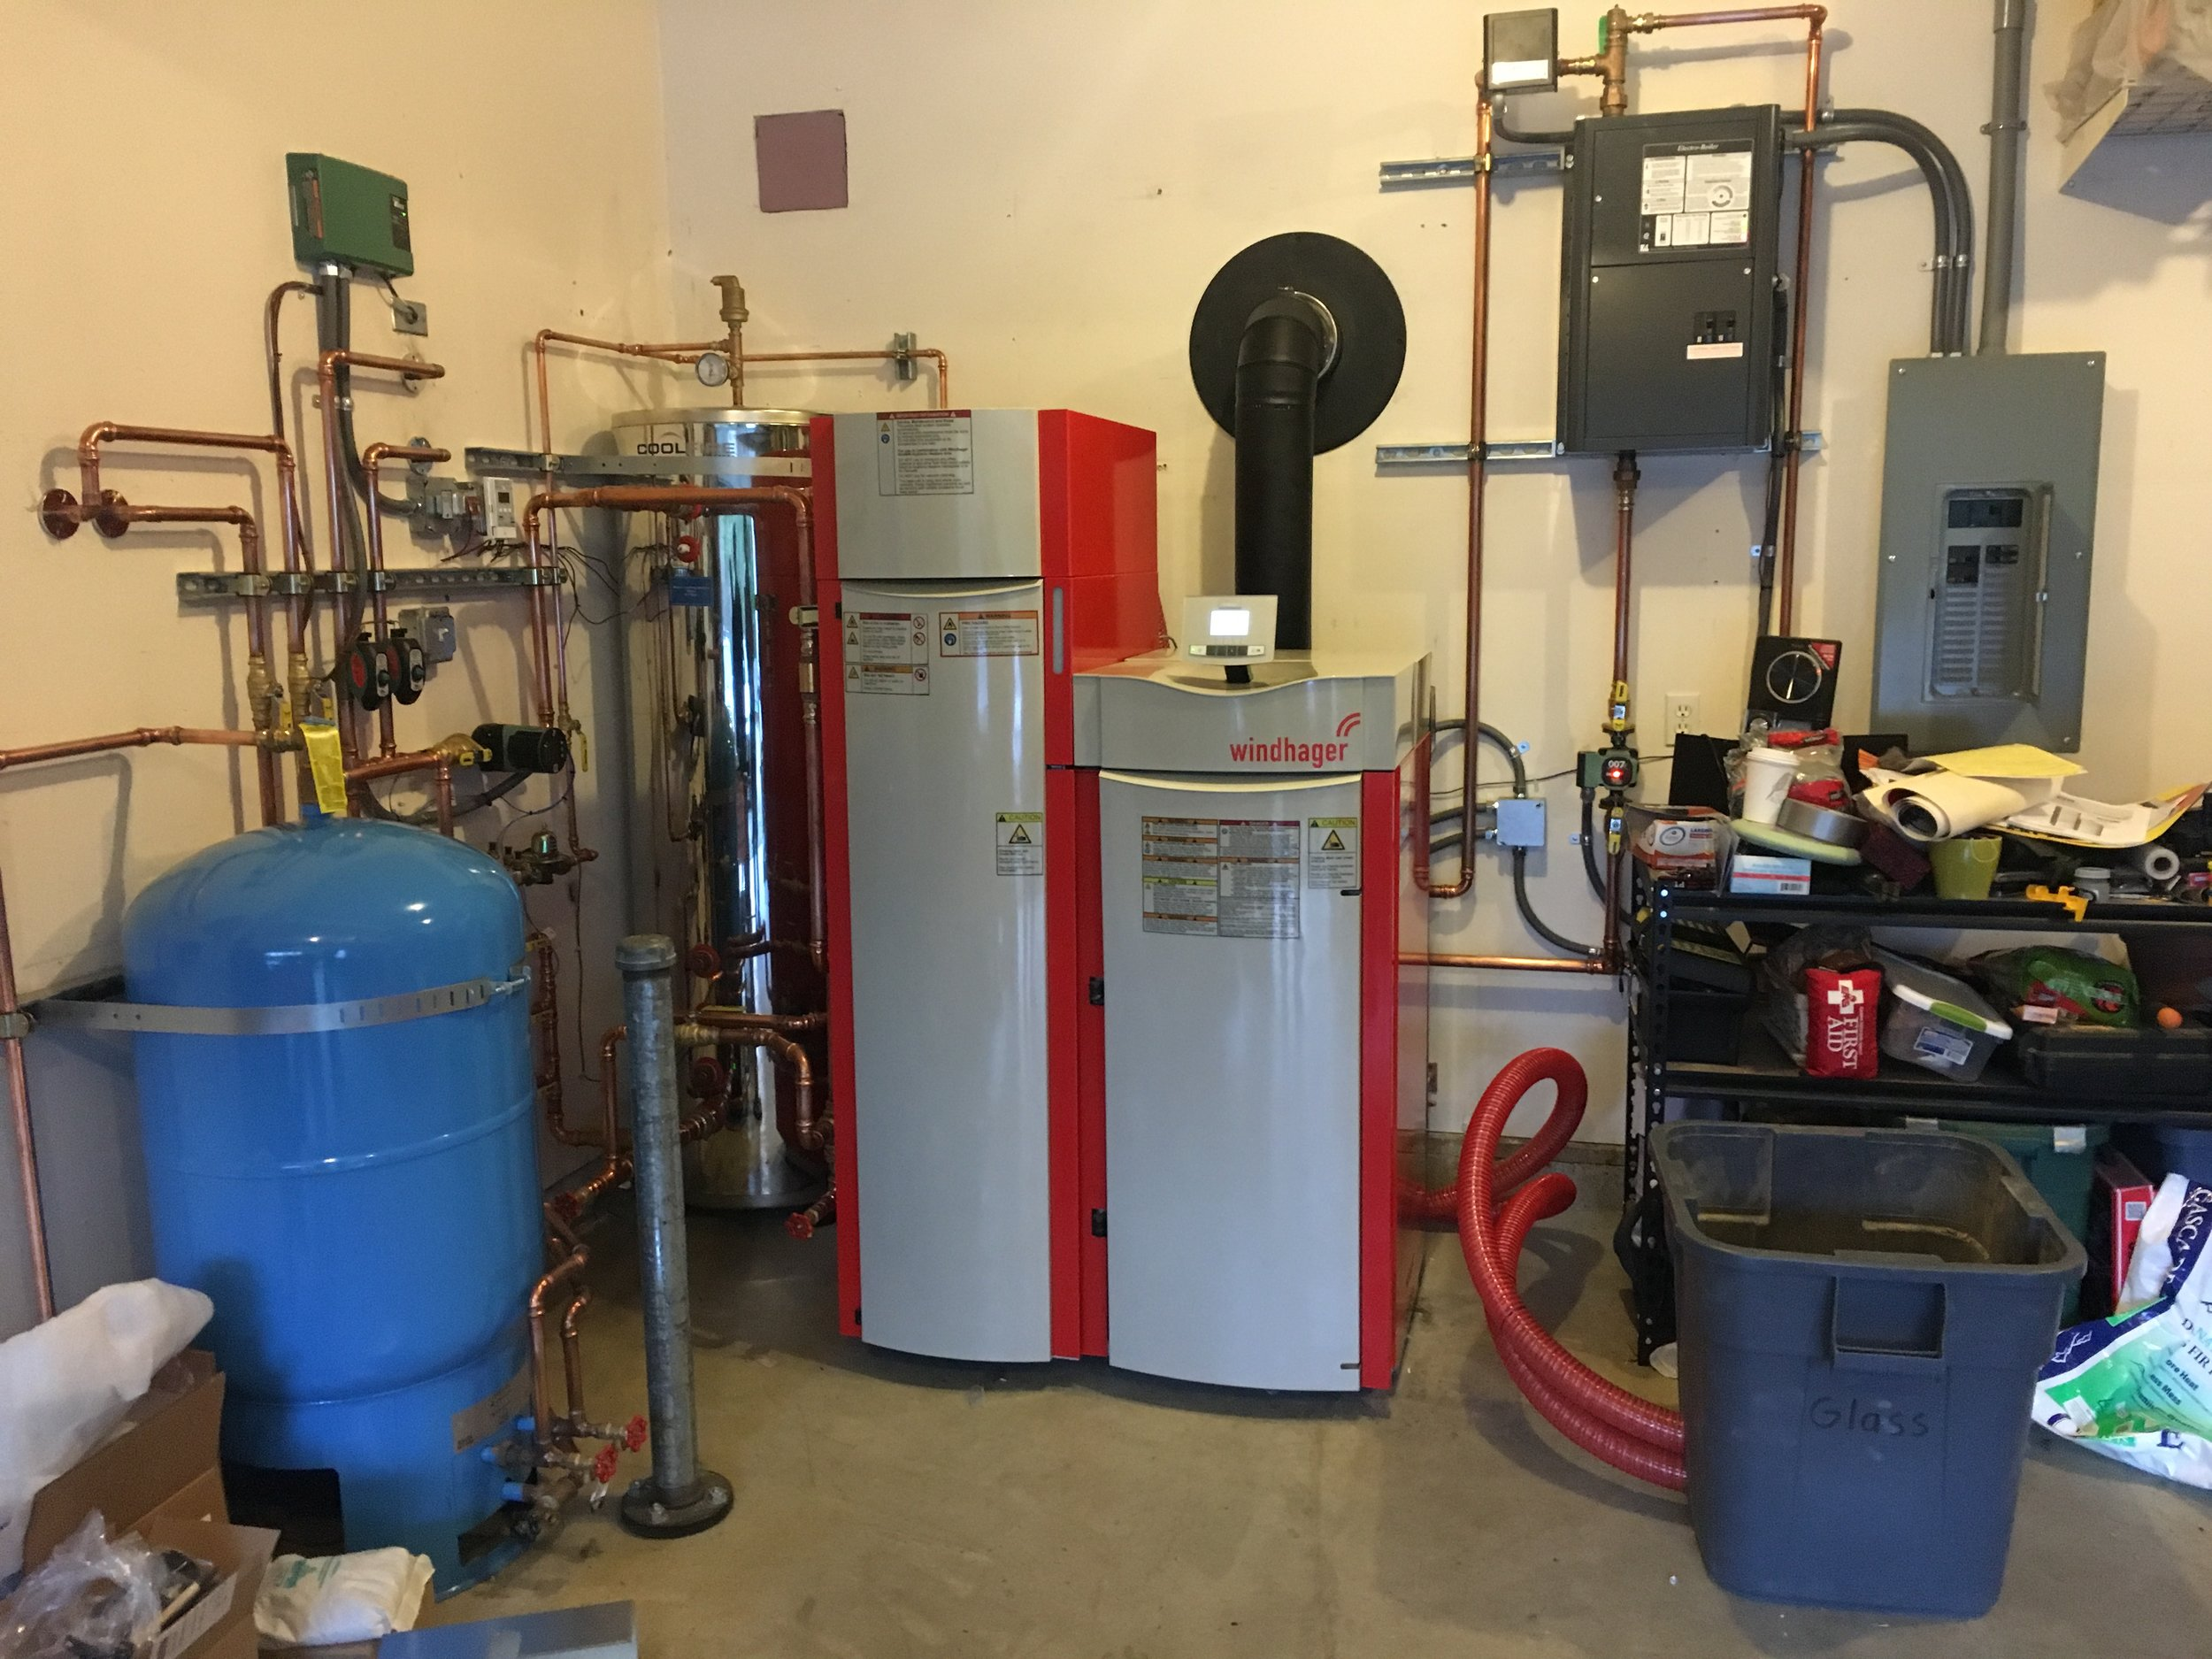 This is the newest biomass boiler in Juneau, Alaska - a small (50,000 btu/hr) Windhager pellet boiler heating a family home. Wisewood Energy procured the boiler and assisted with design and commissioning.